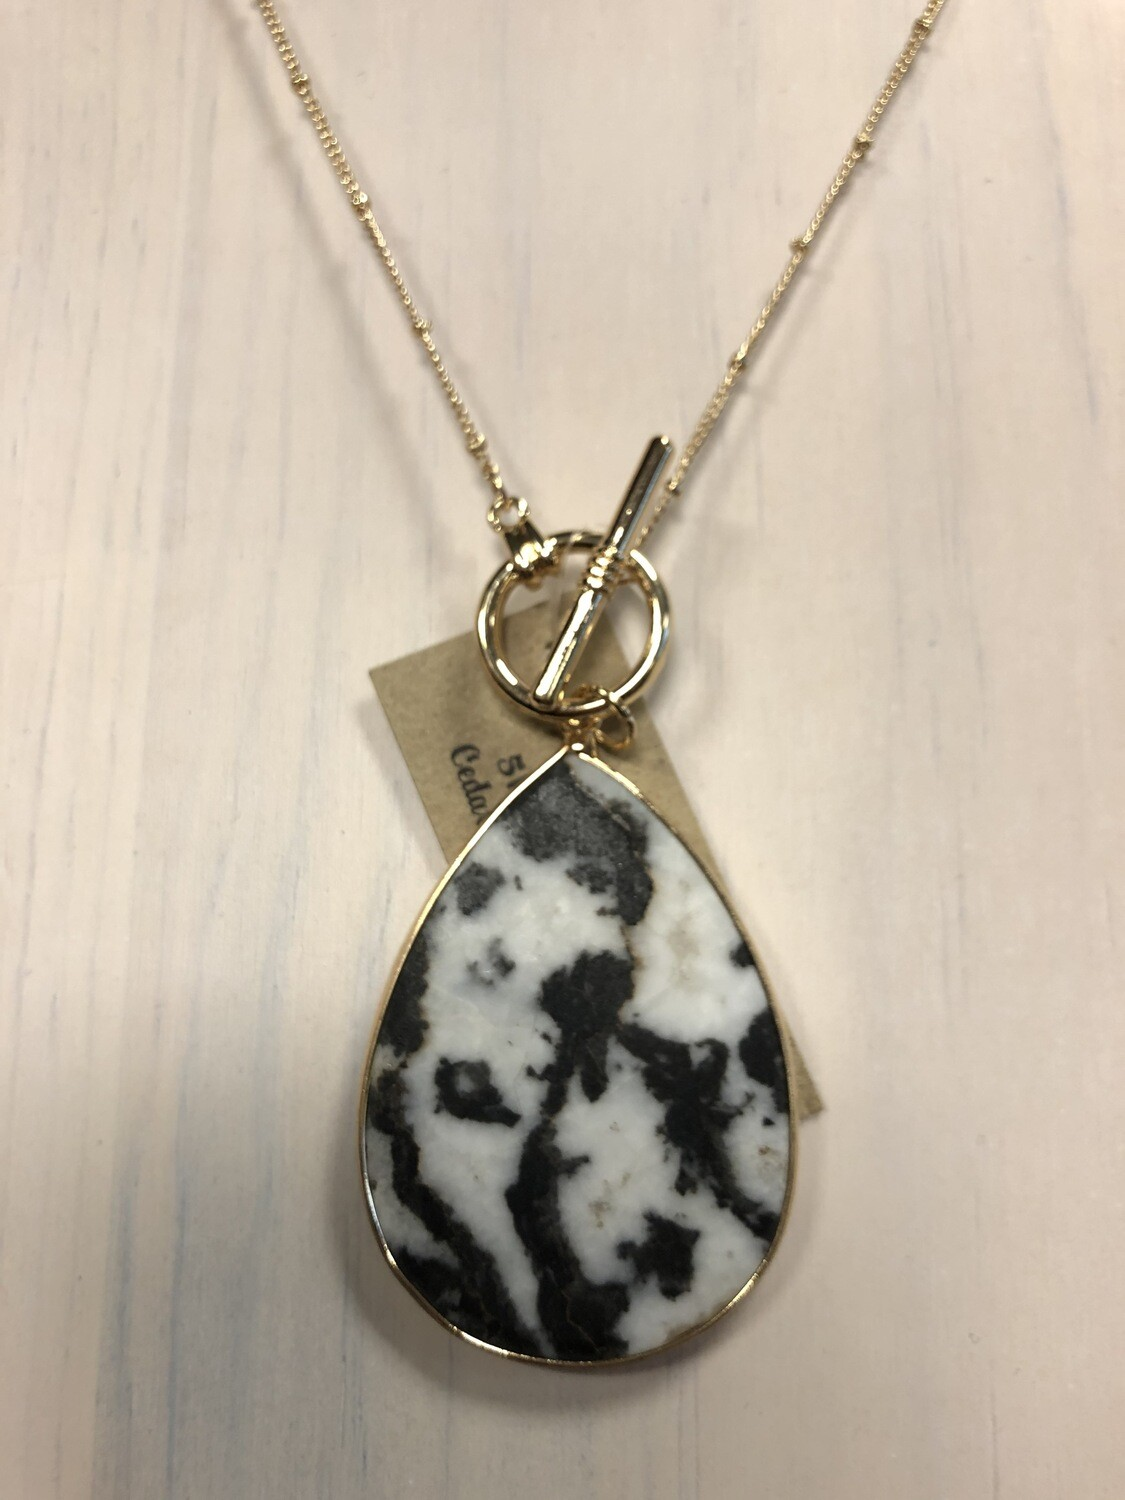 Black/White Teardrop Stone Pendant on Long Gold Chain